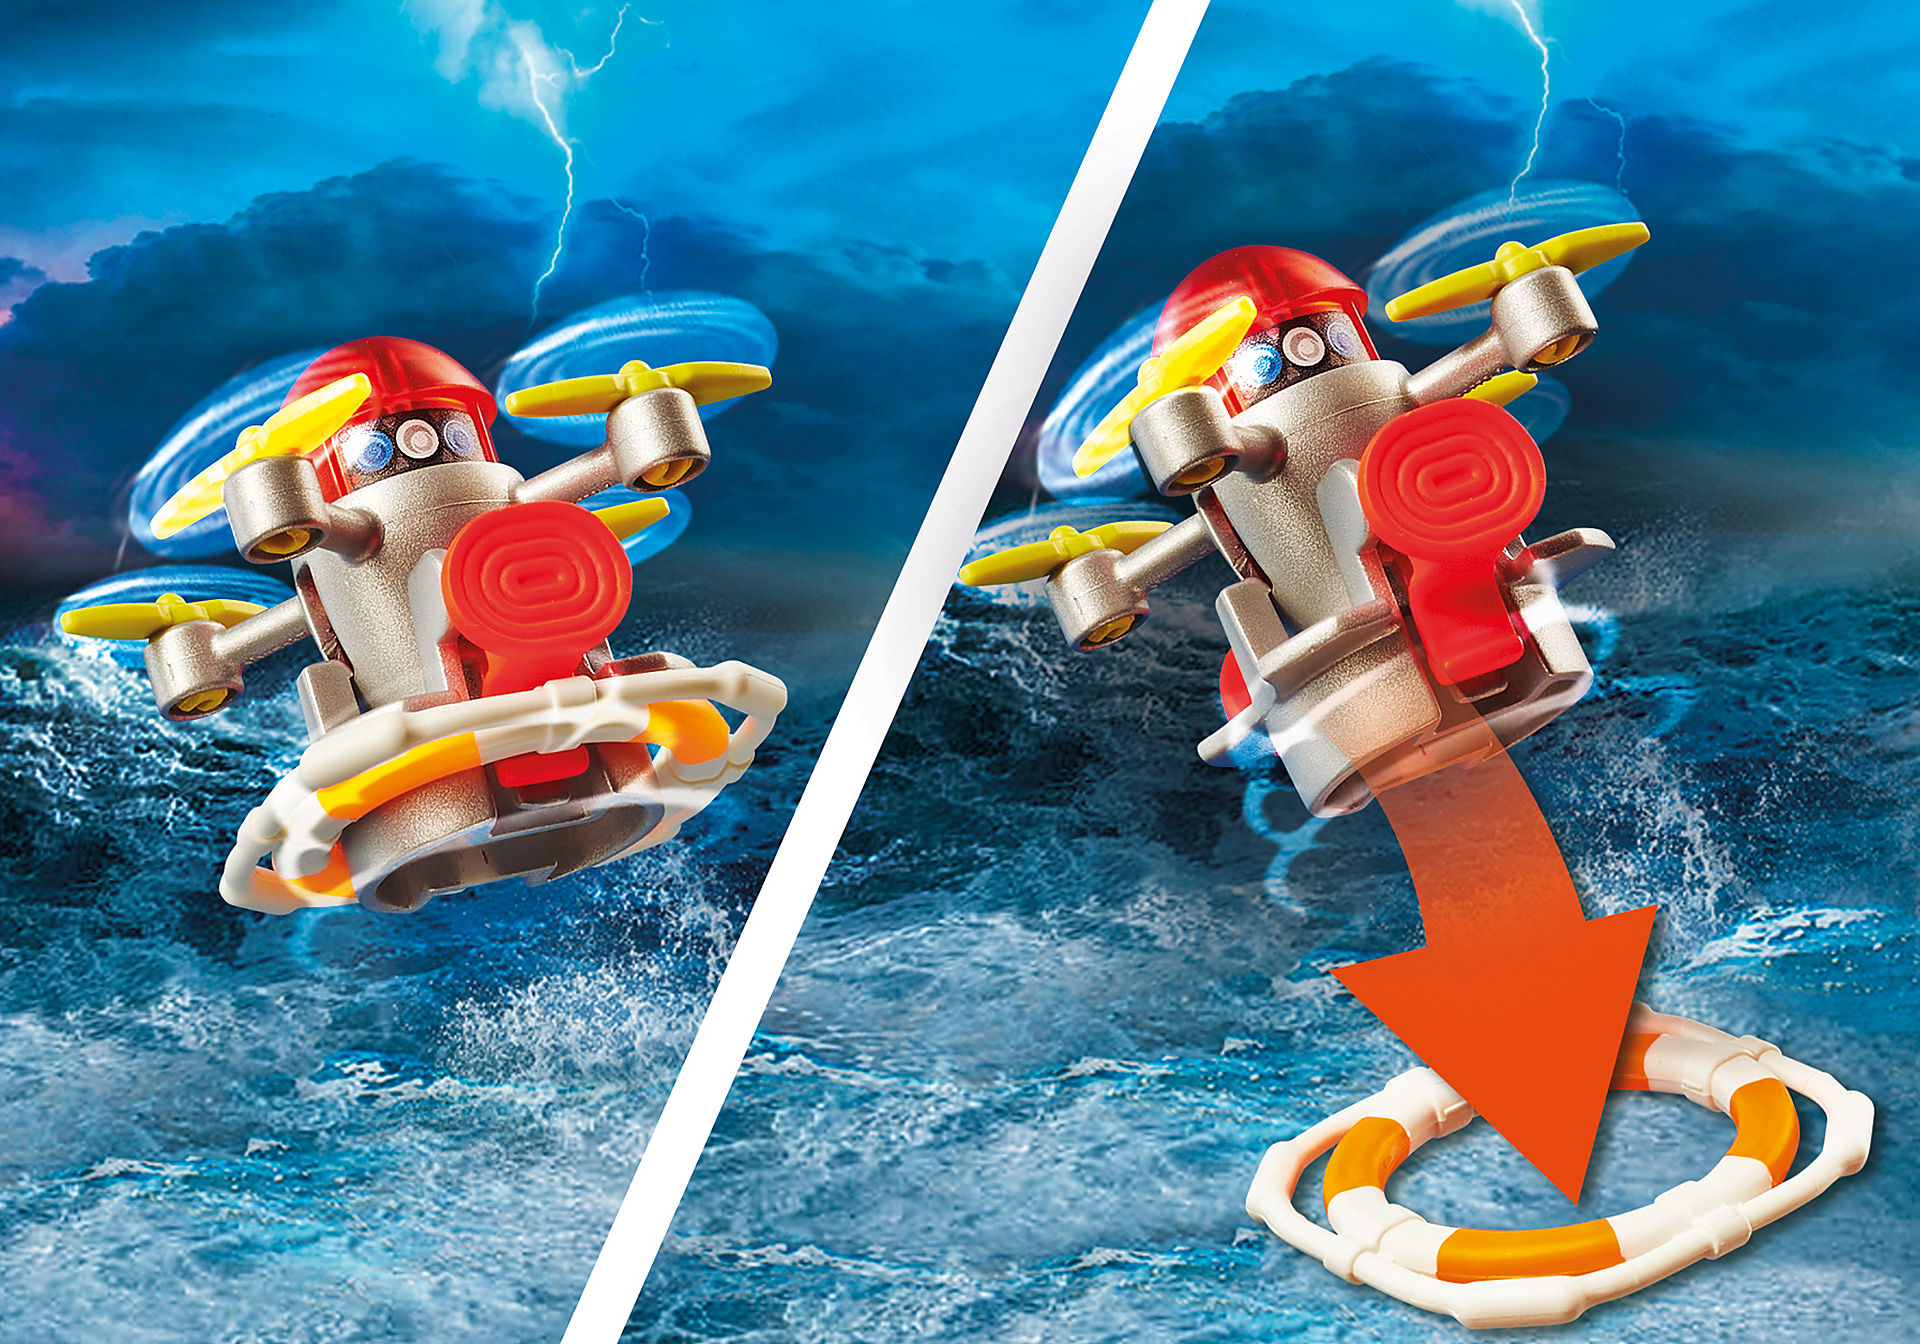 70140 Fire Rescue with Personal Watercraft zoom image6